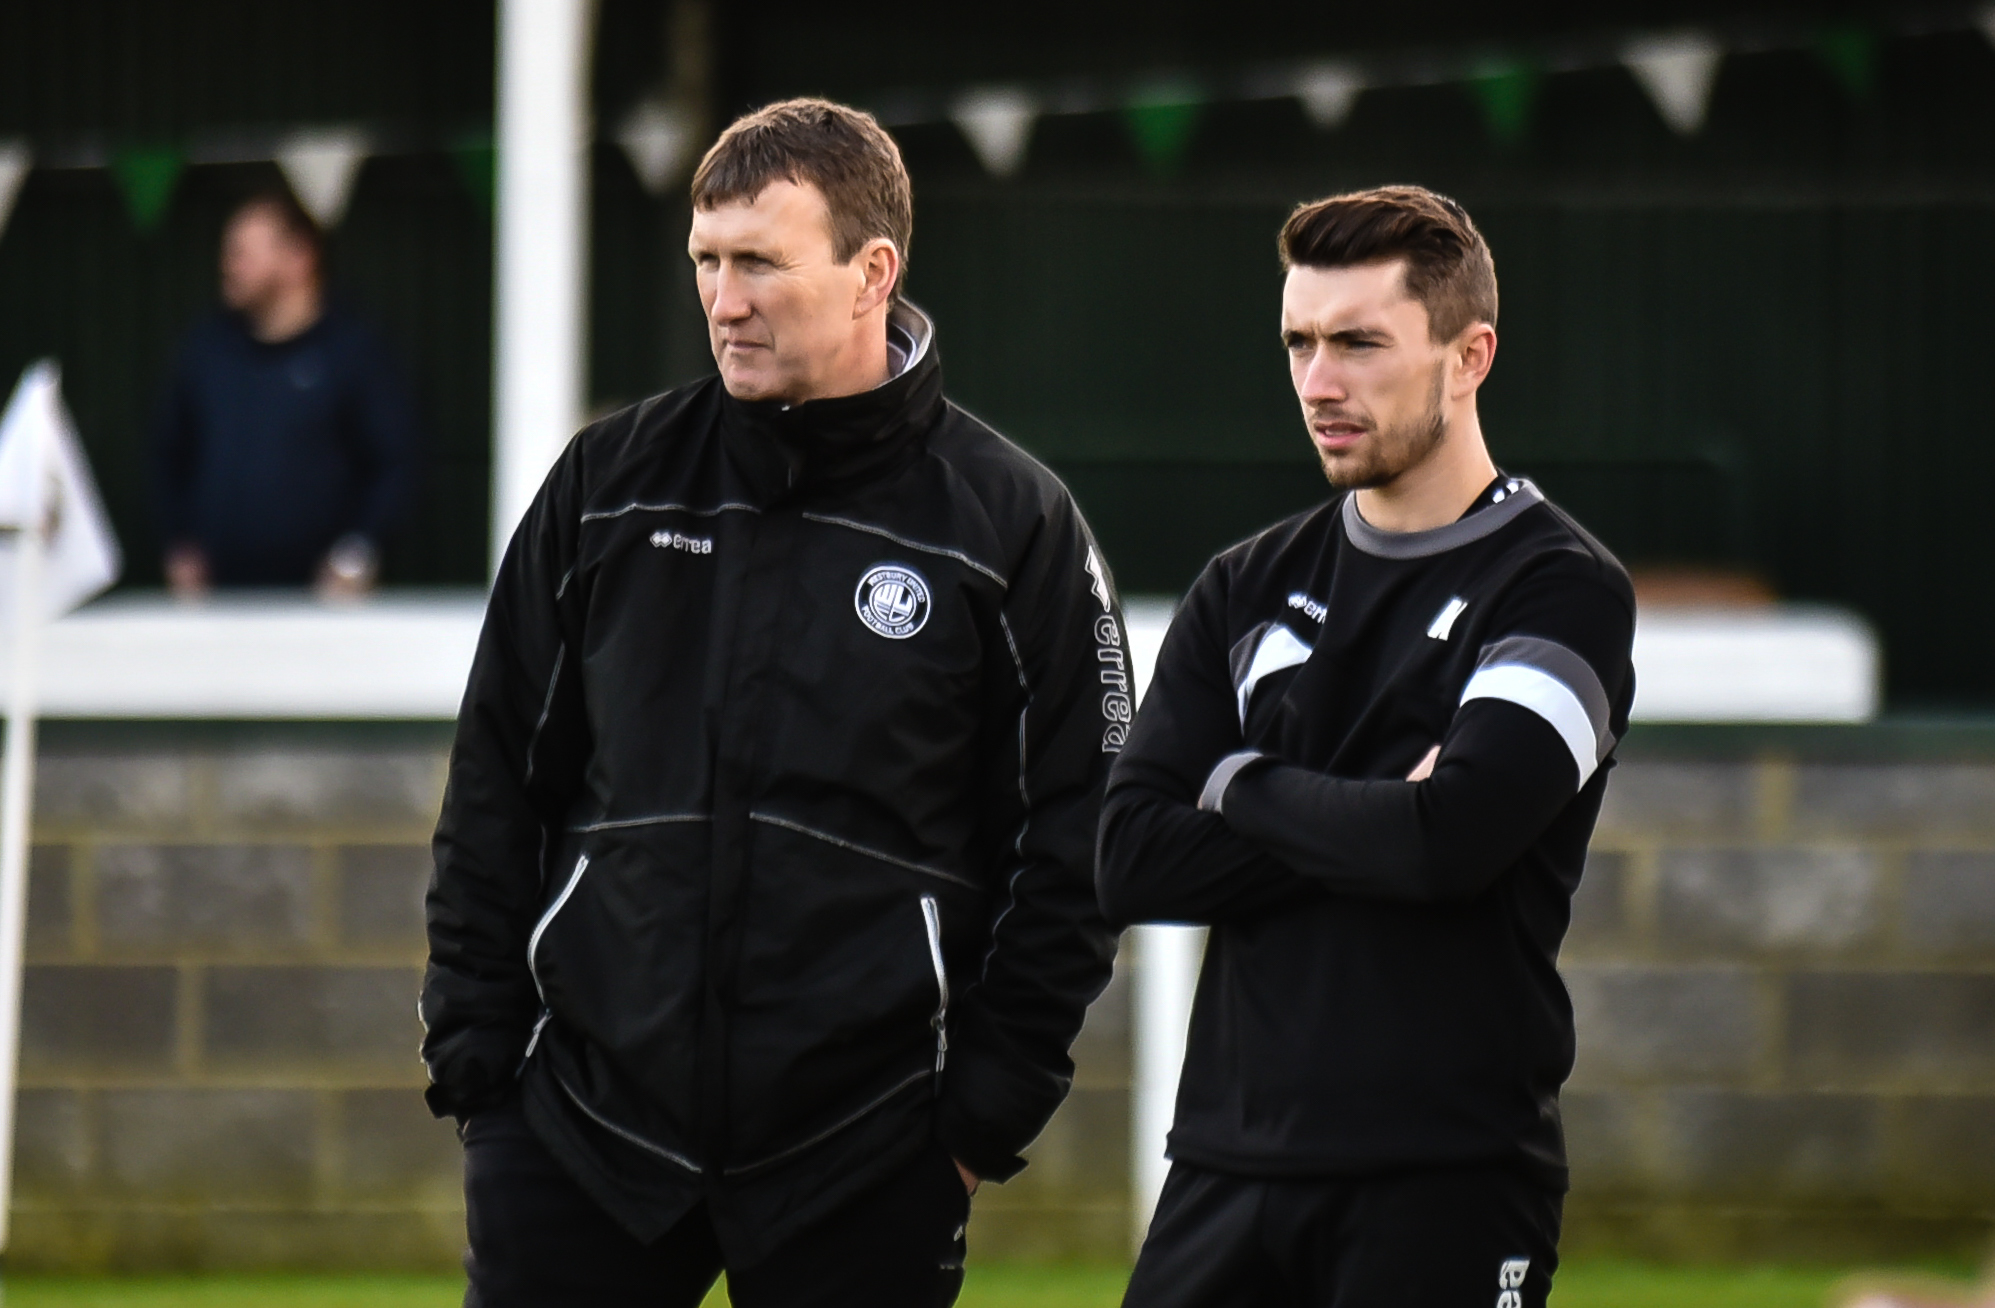 Westbury United's management team of Joe and Neil Kirkpatrick